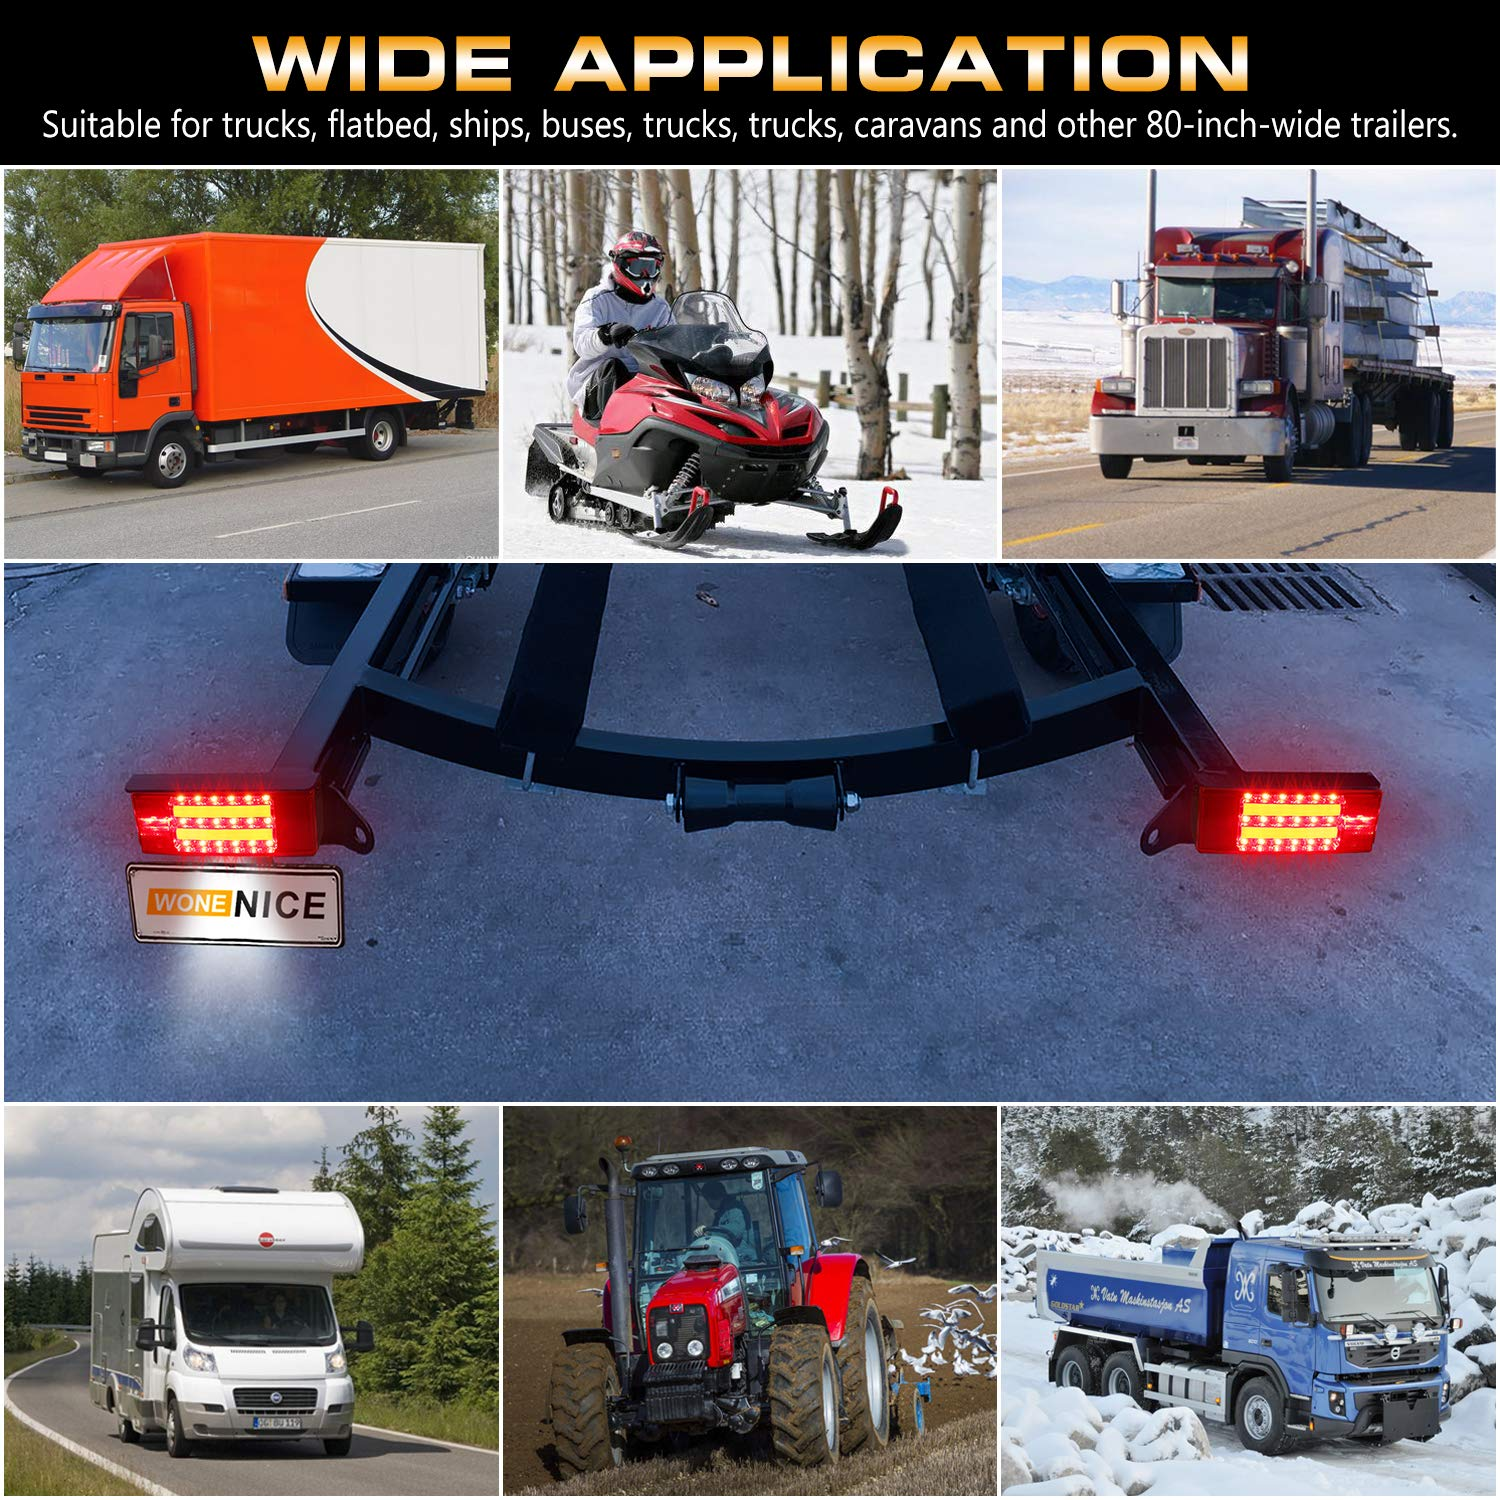 WoneNice LED Low Profile Submersible Trailer Tail Light Kit Tail Lights rectangle LED Trailer Lights Halo Glow with Wiring Harness Combined Stop Turn Function for Boat Trailer 12V